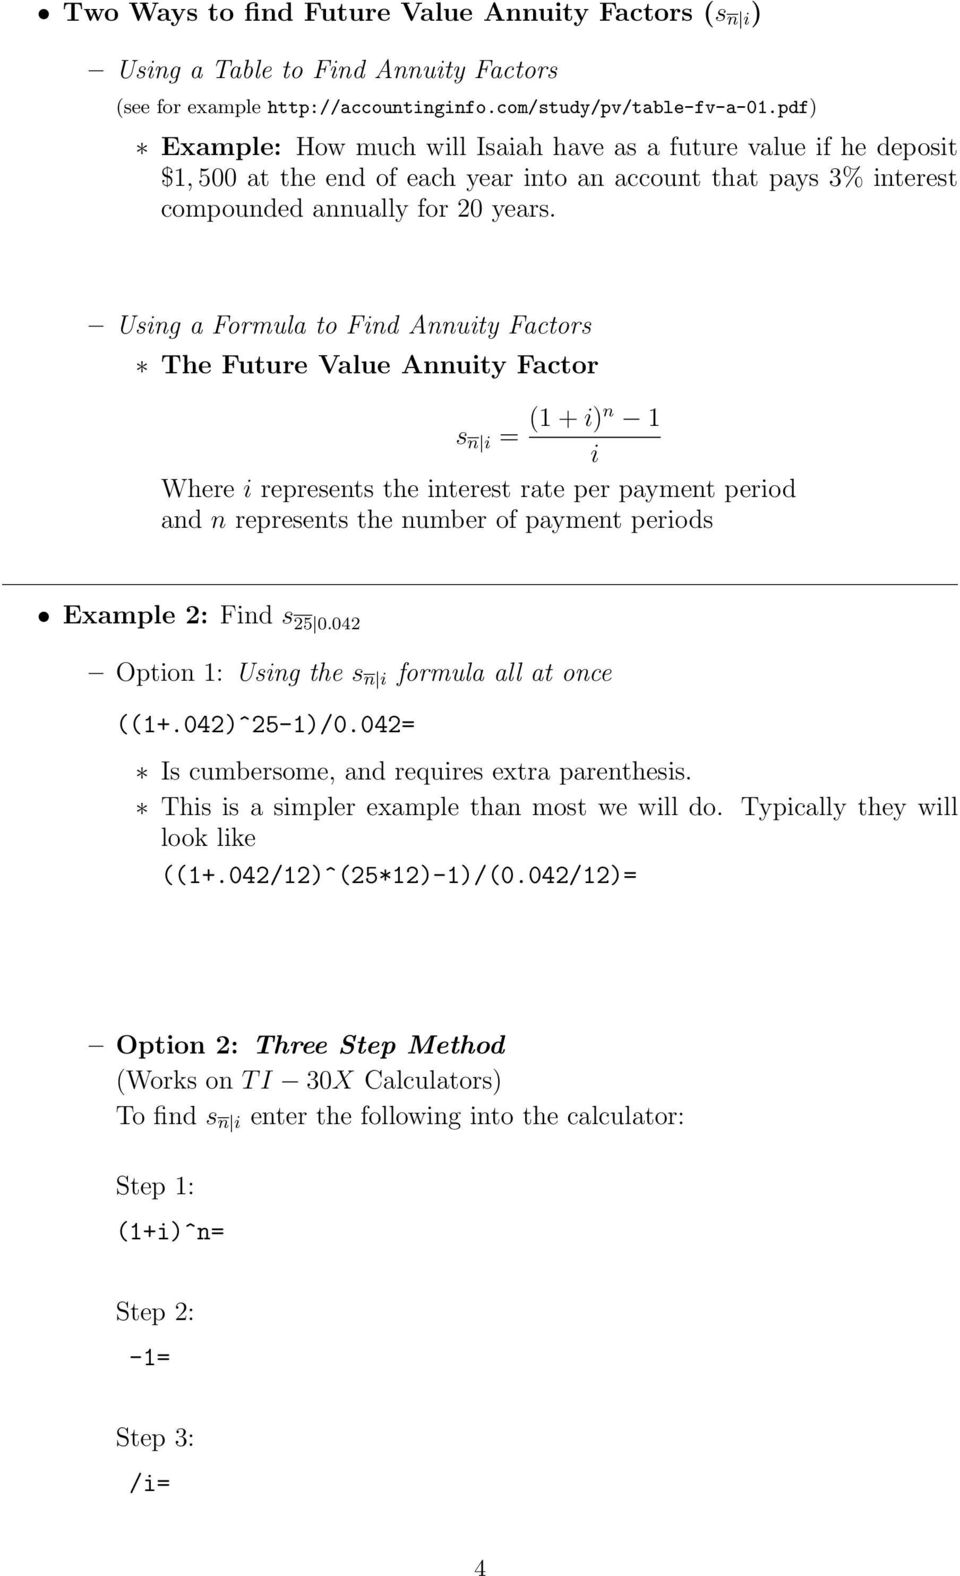 Using A Formula To Find Annuity Factors The Future Value Factor S N I 1